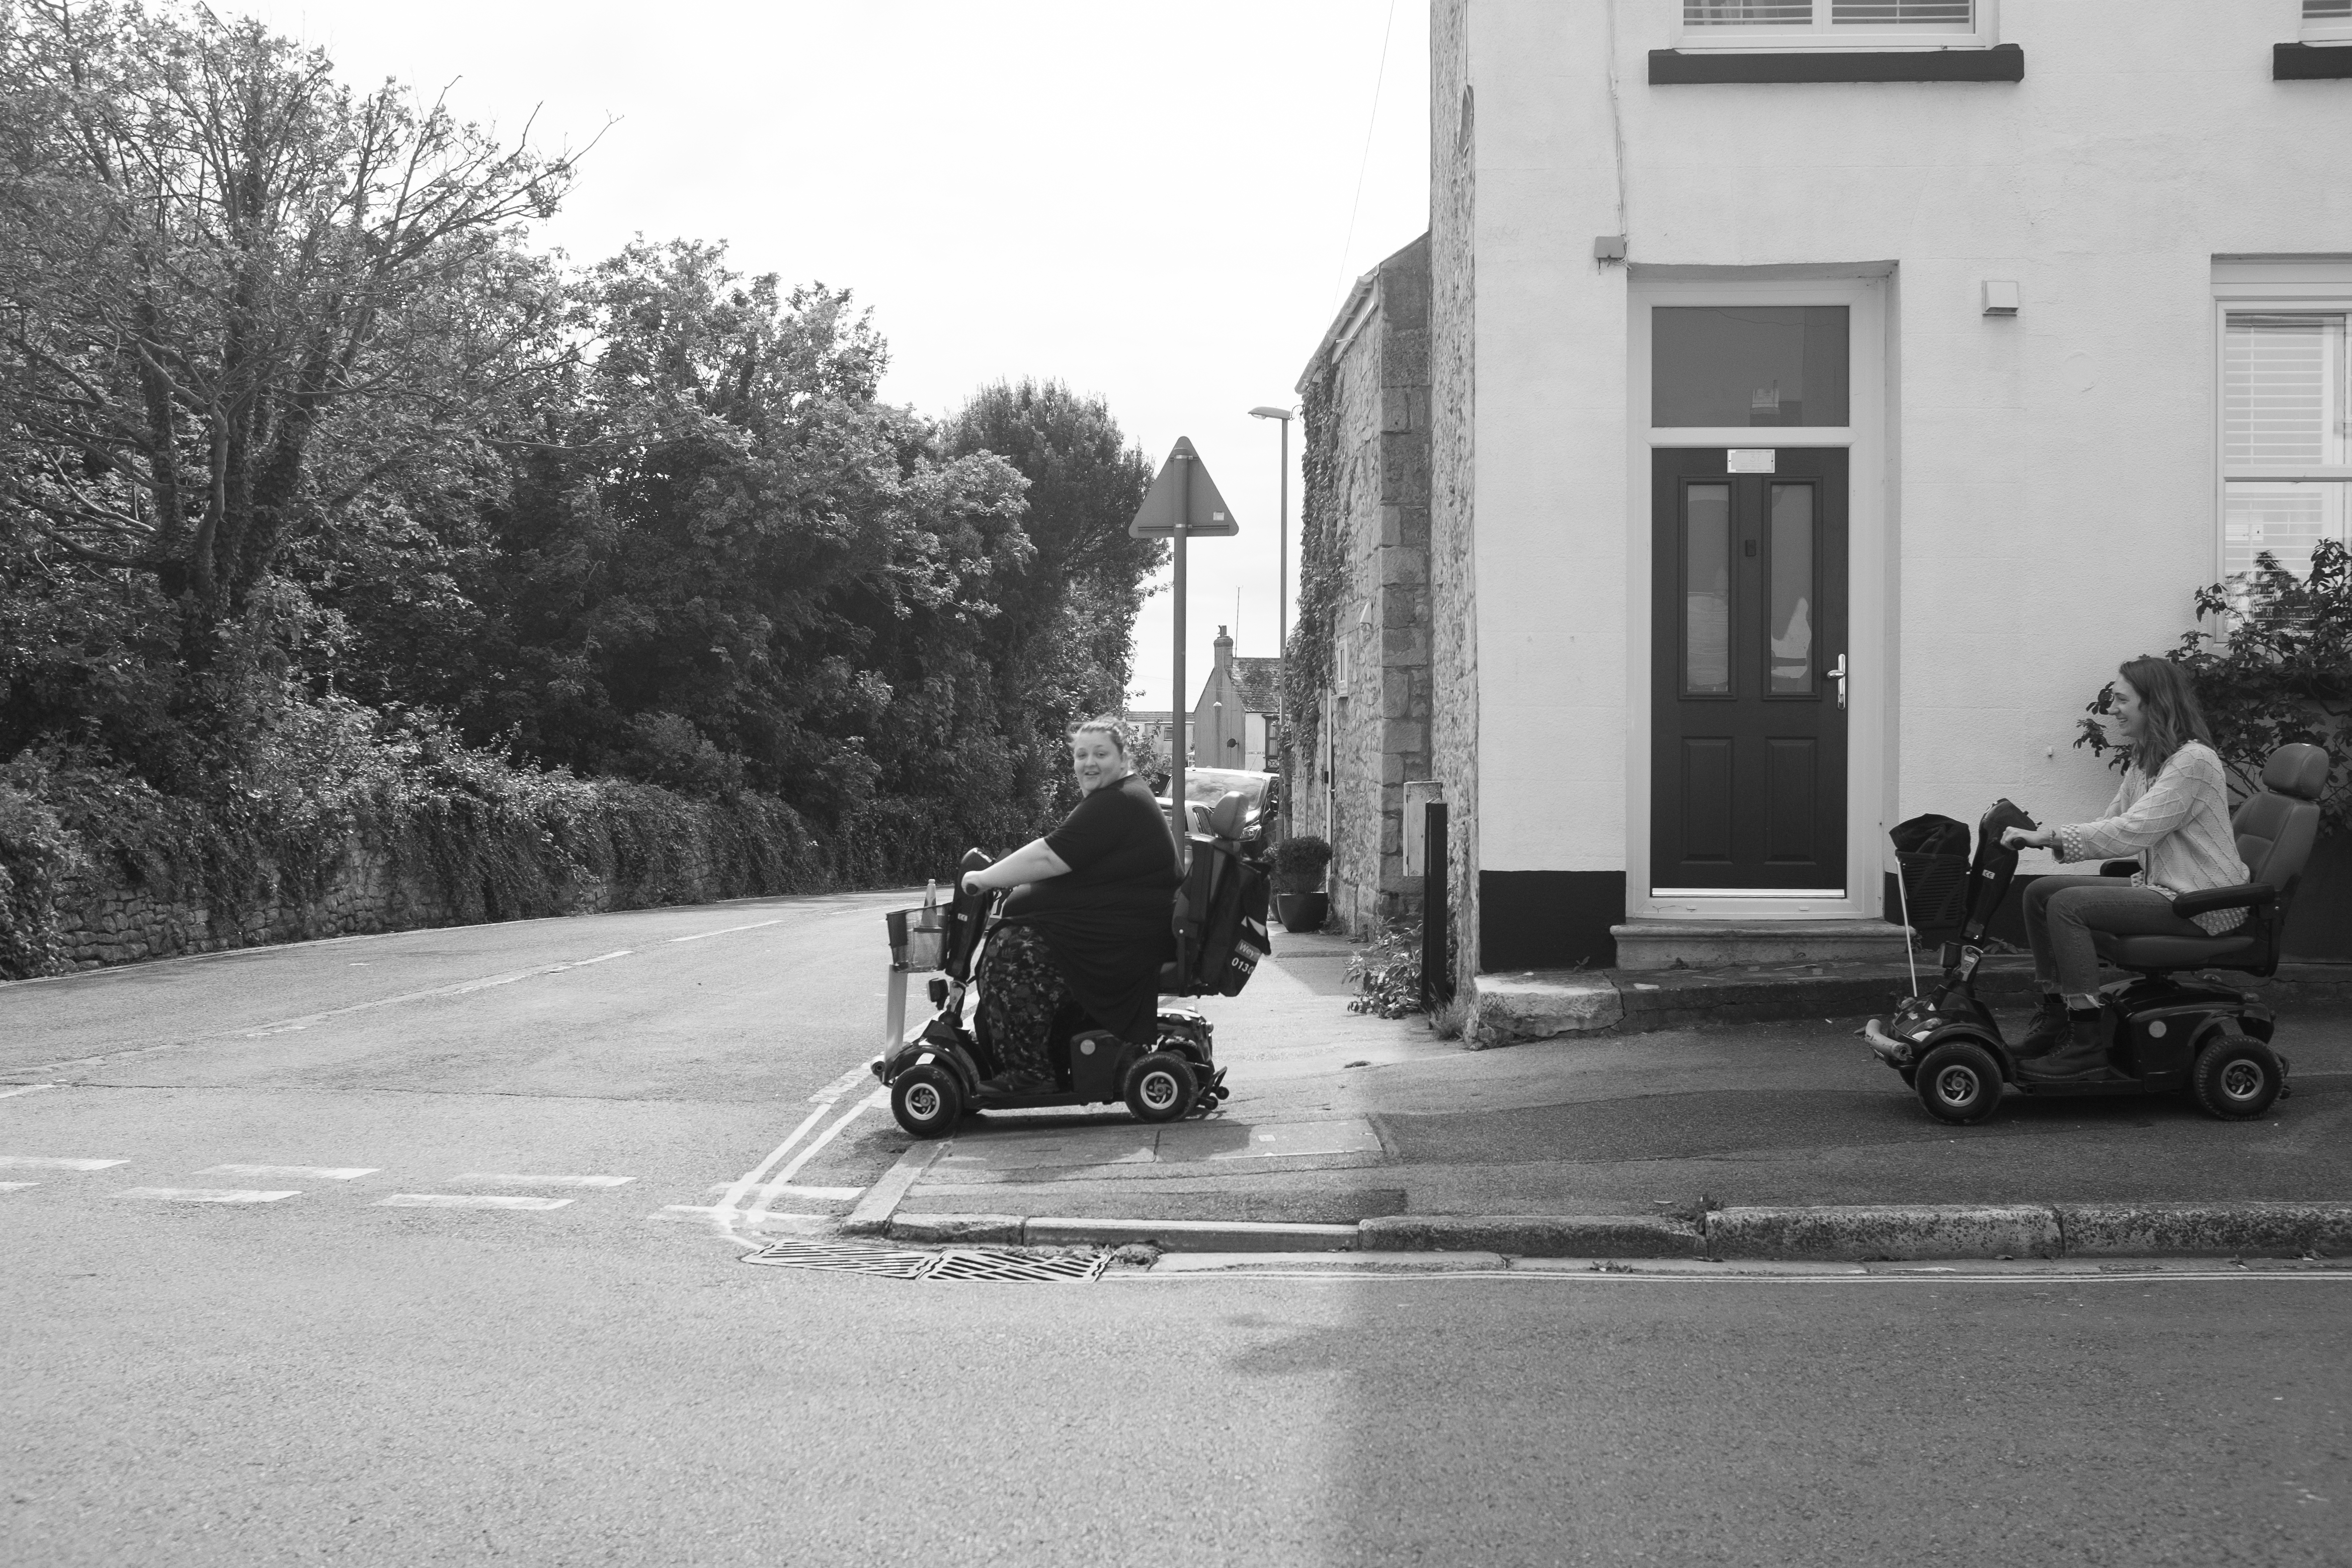 A black and white of two people on mobility scooters, about to cross a road.